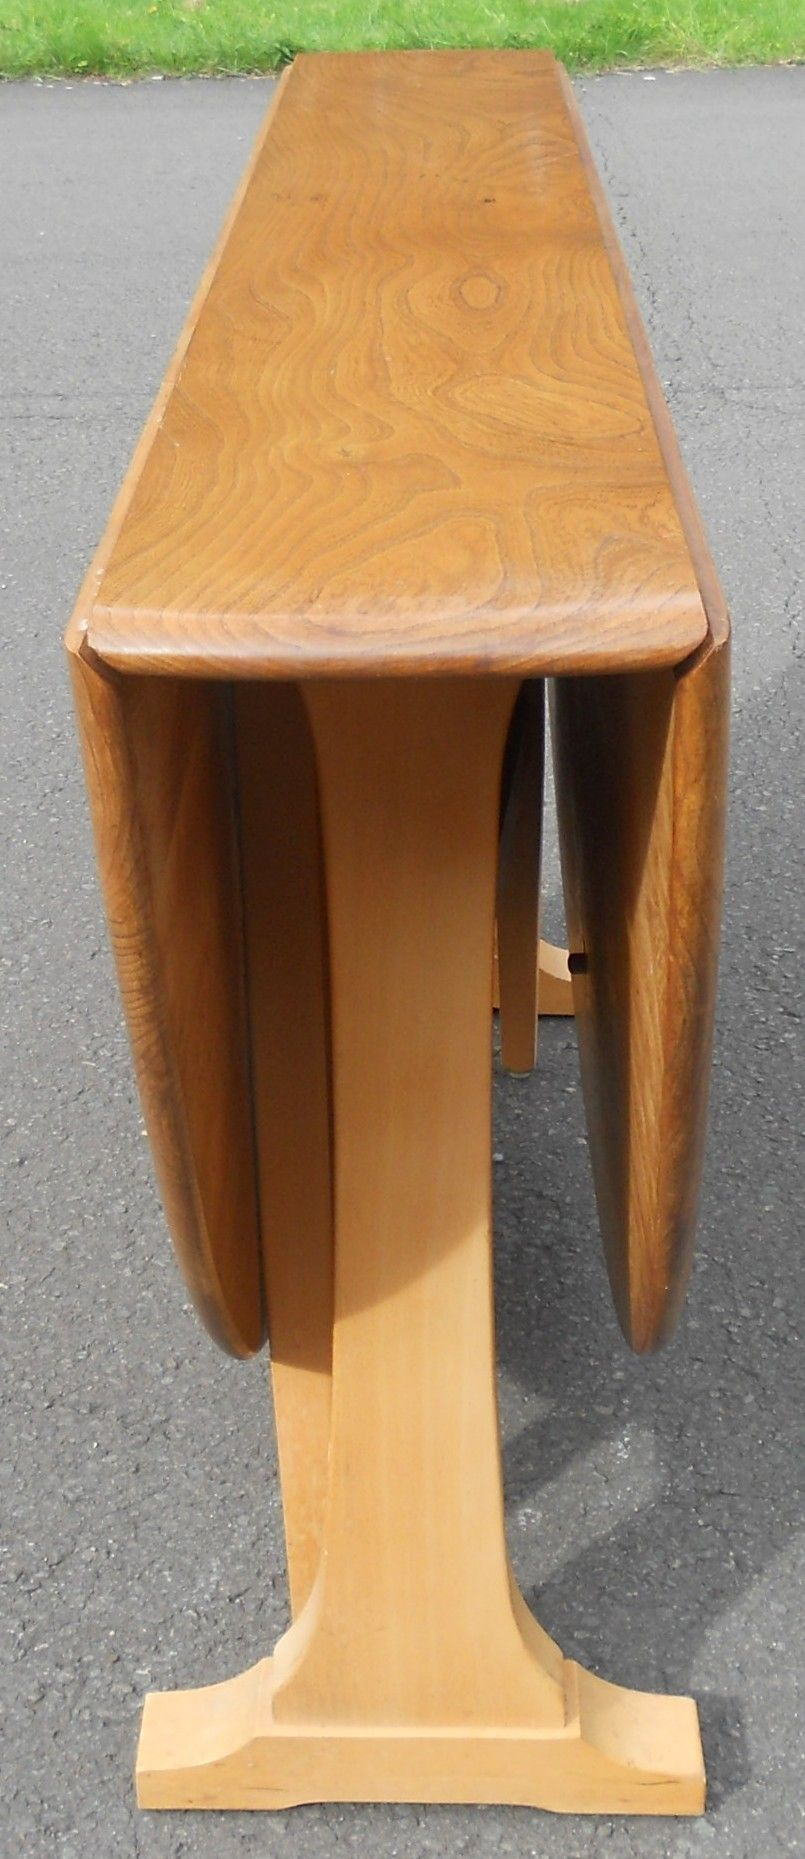 Ercol Narrow Dropleaf Dining Table